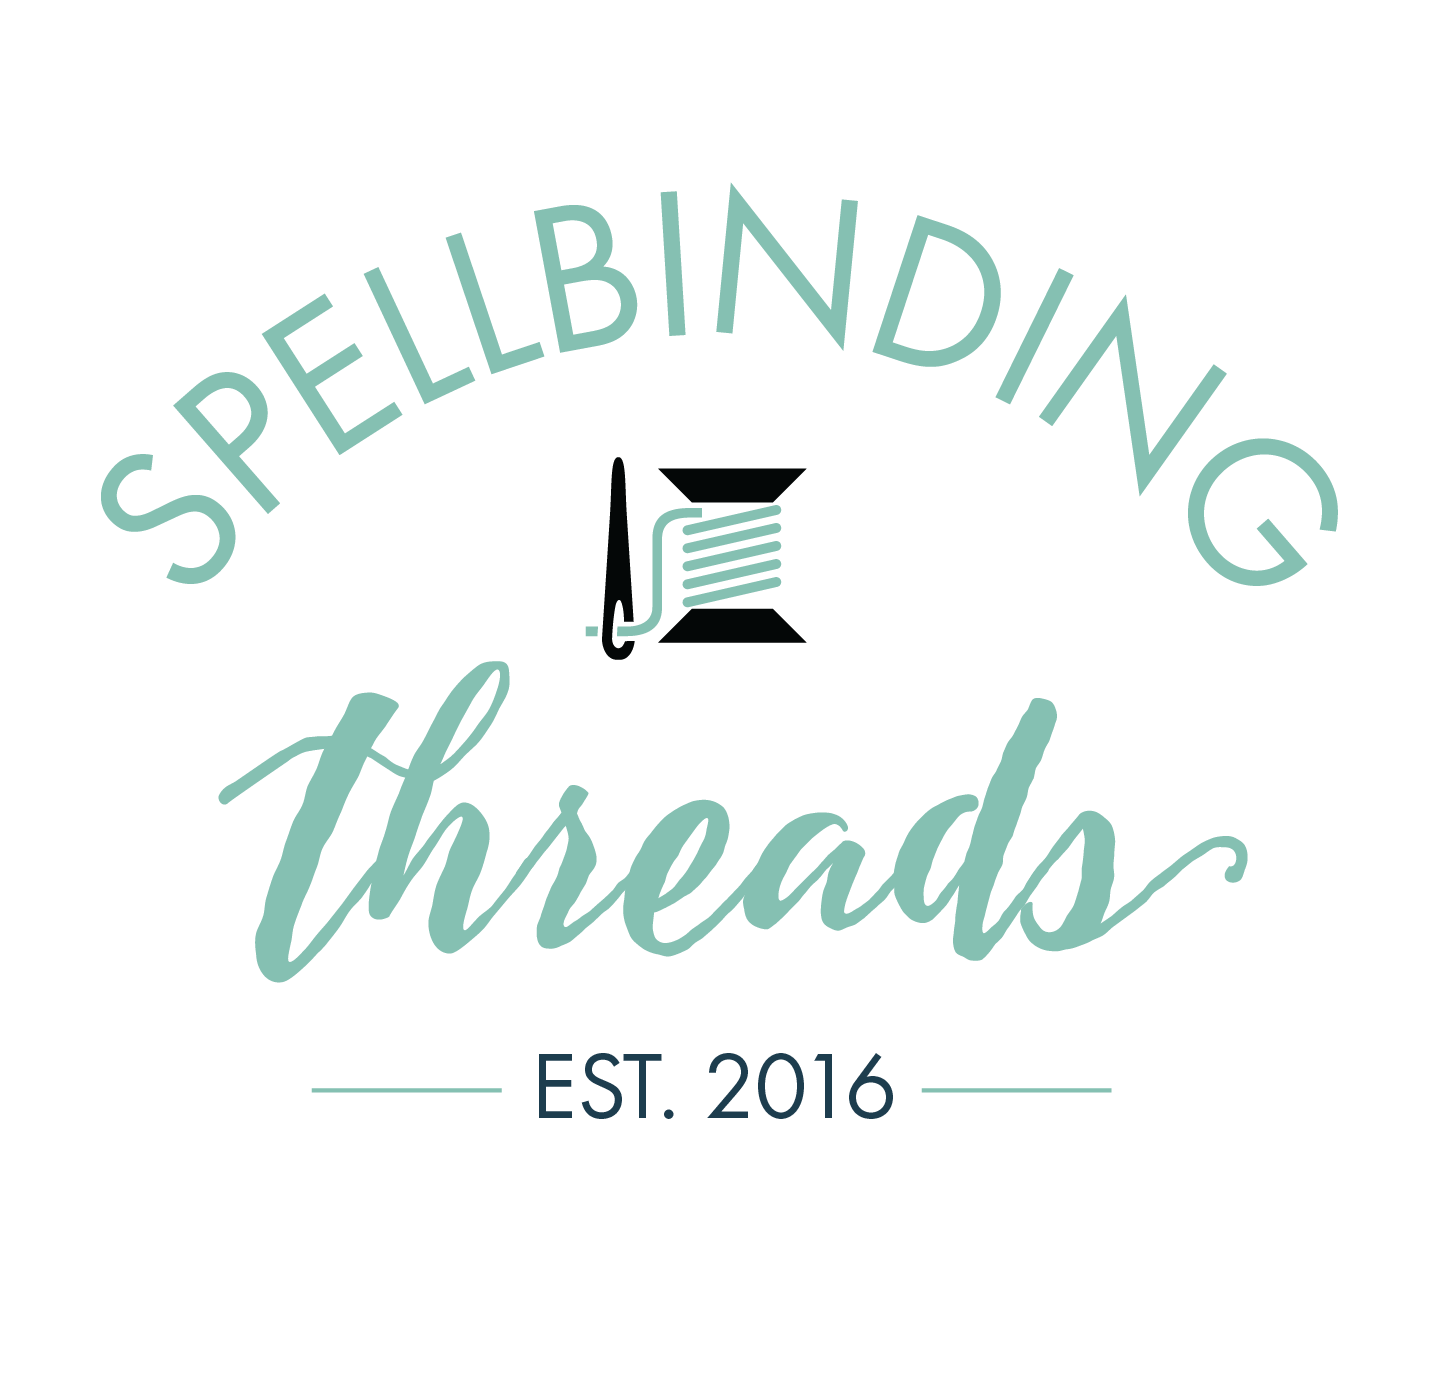 Spellbinding Threads   | Embroidered Gifts